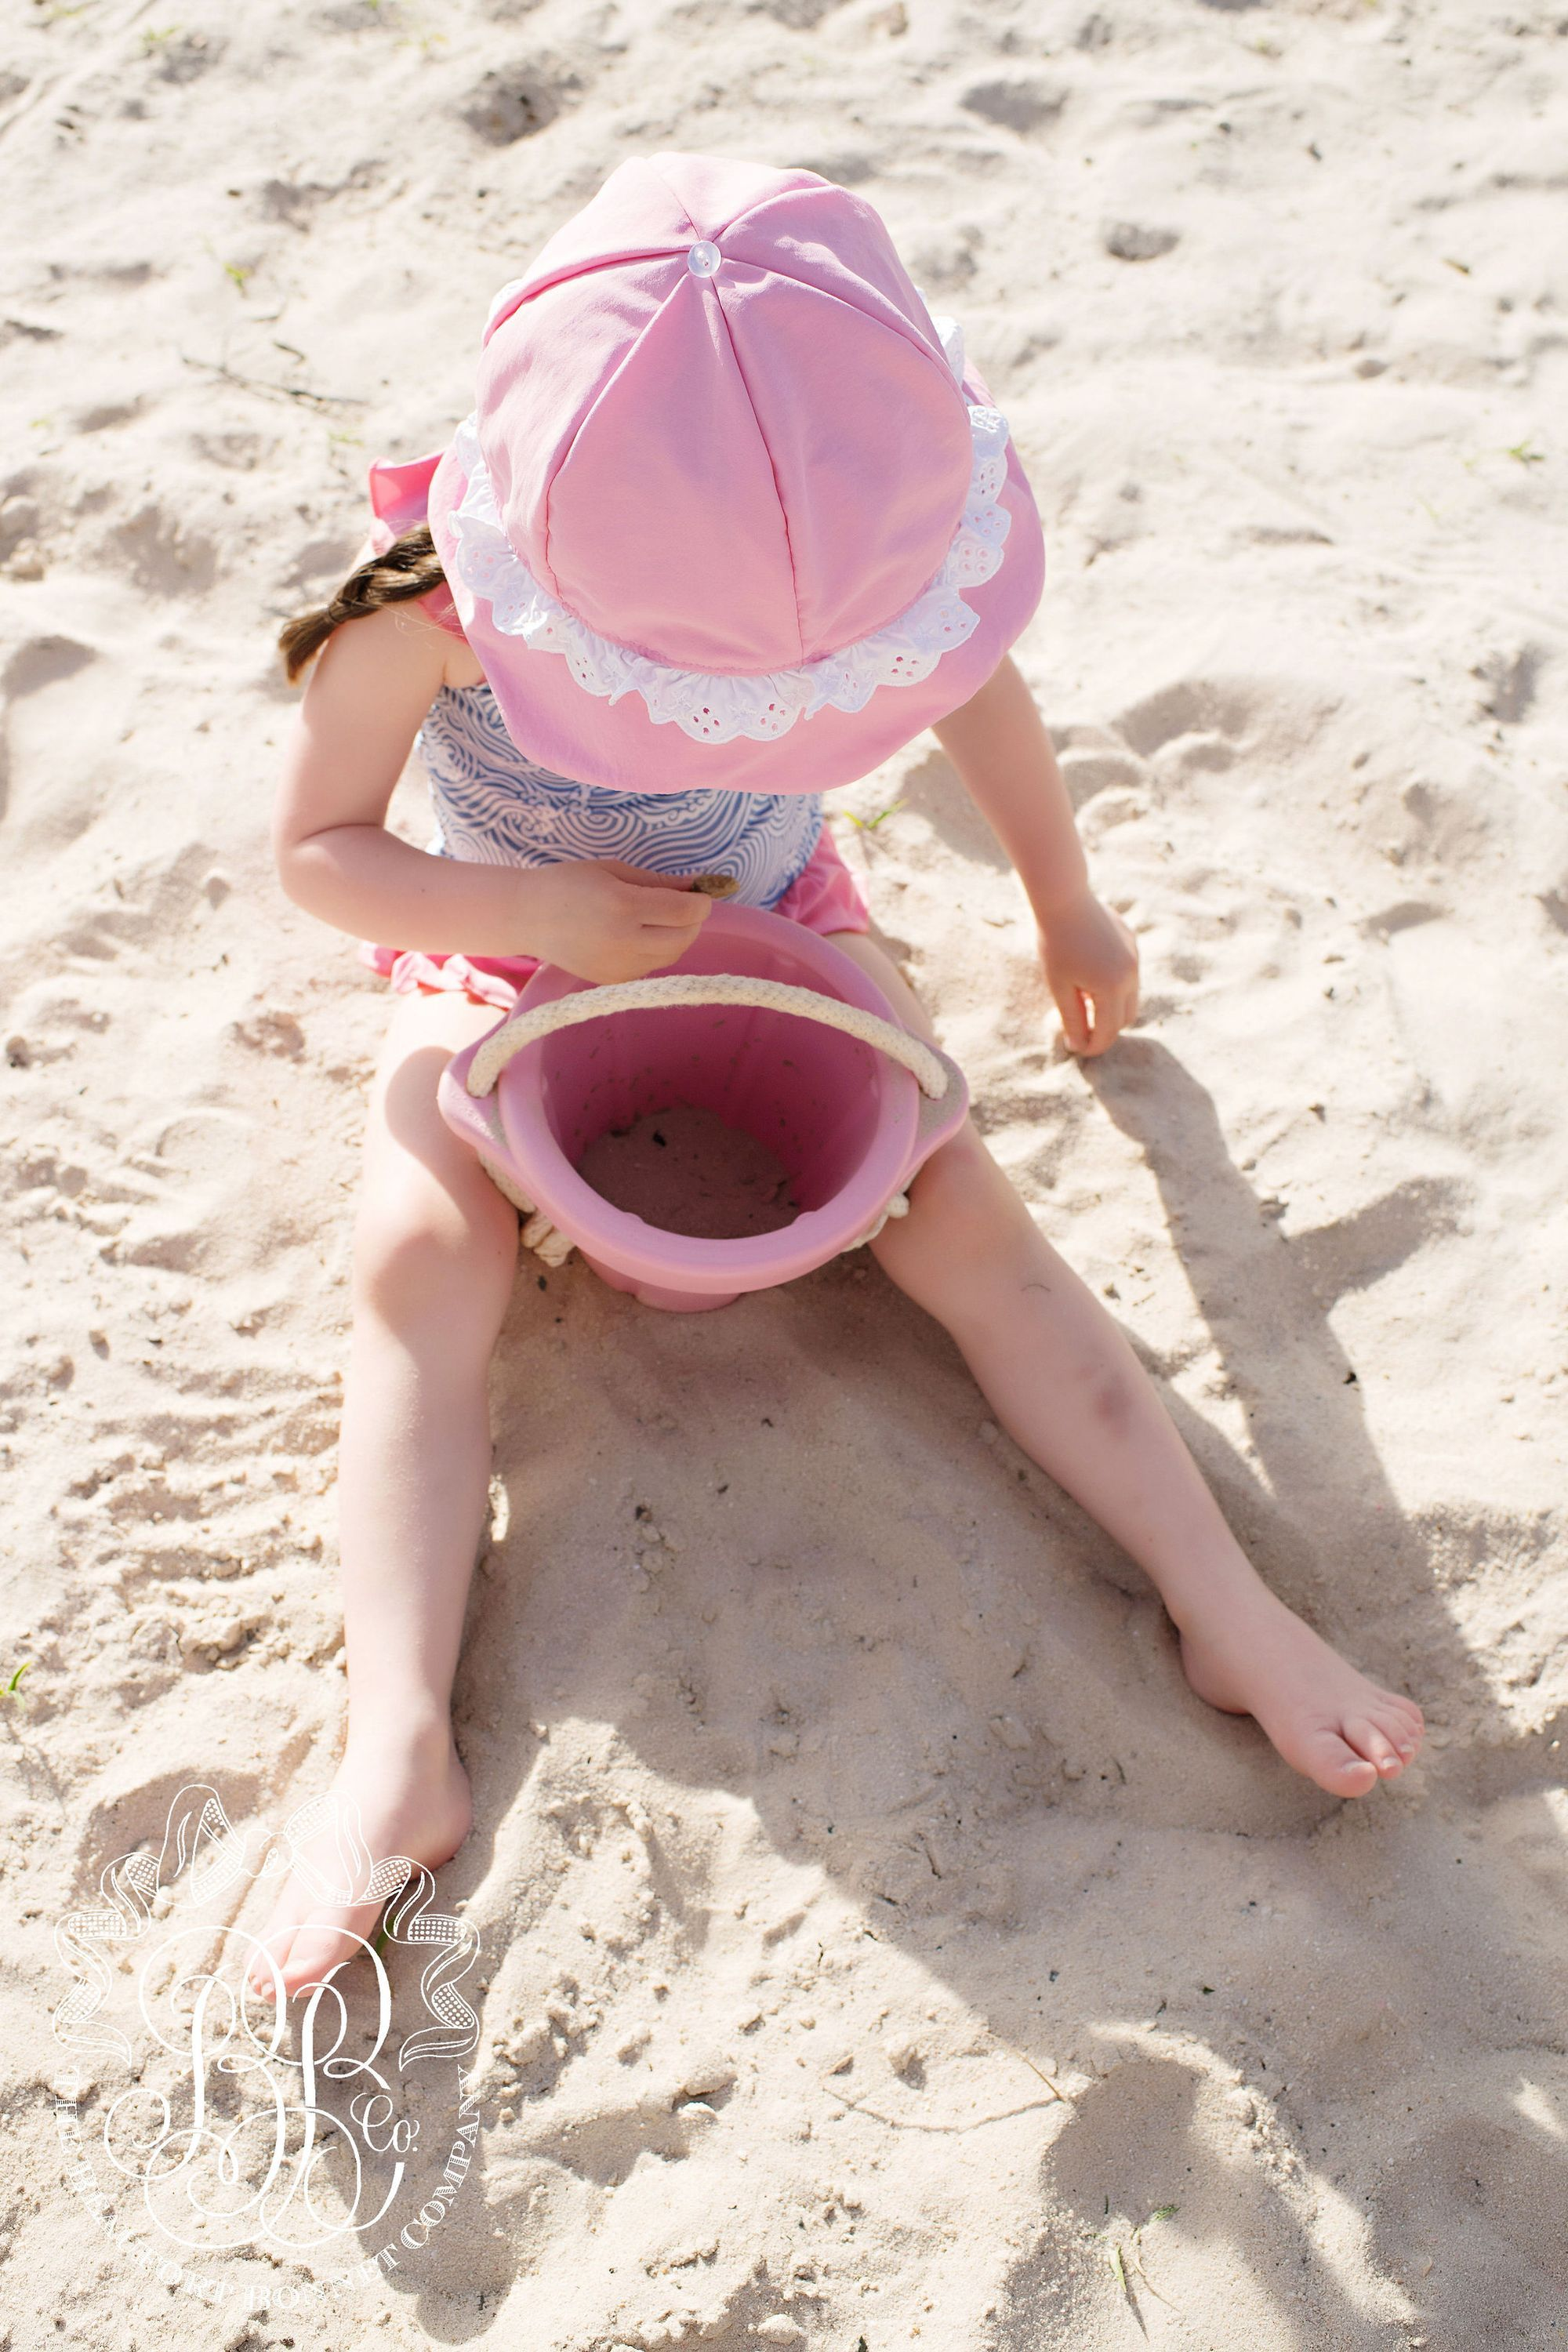 41dccd34c83ab Hartley Hat - Hamptons Hot Pink with White Swim Eyelet - The Beaufort  Bonnet Company